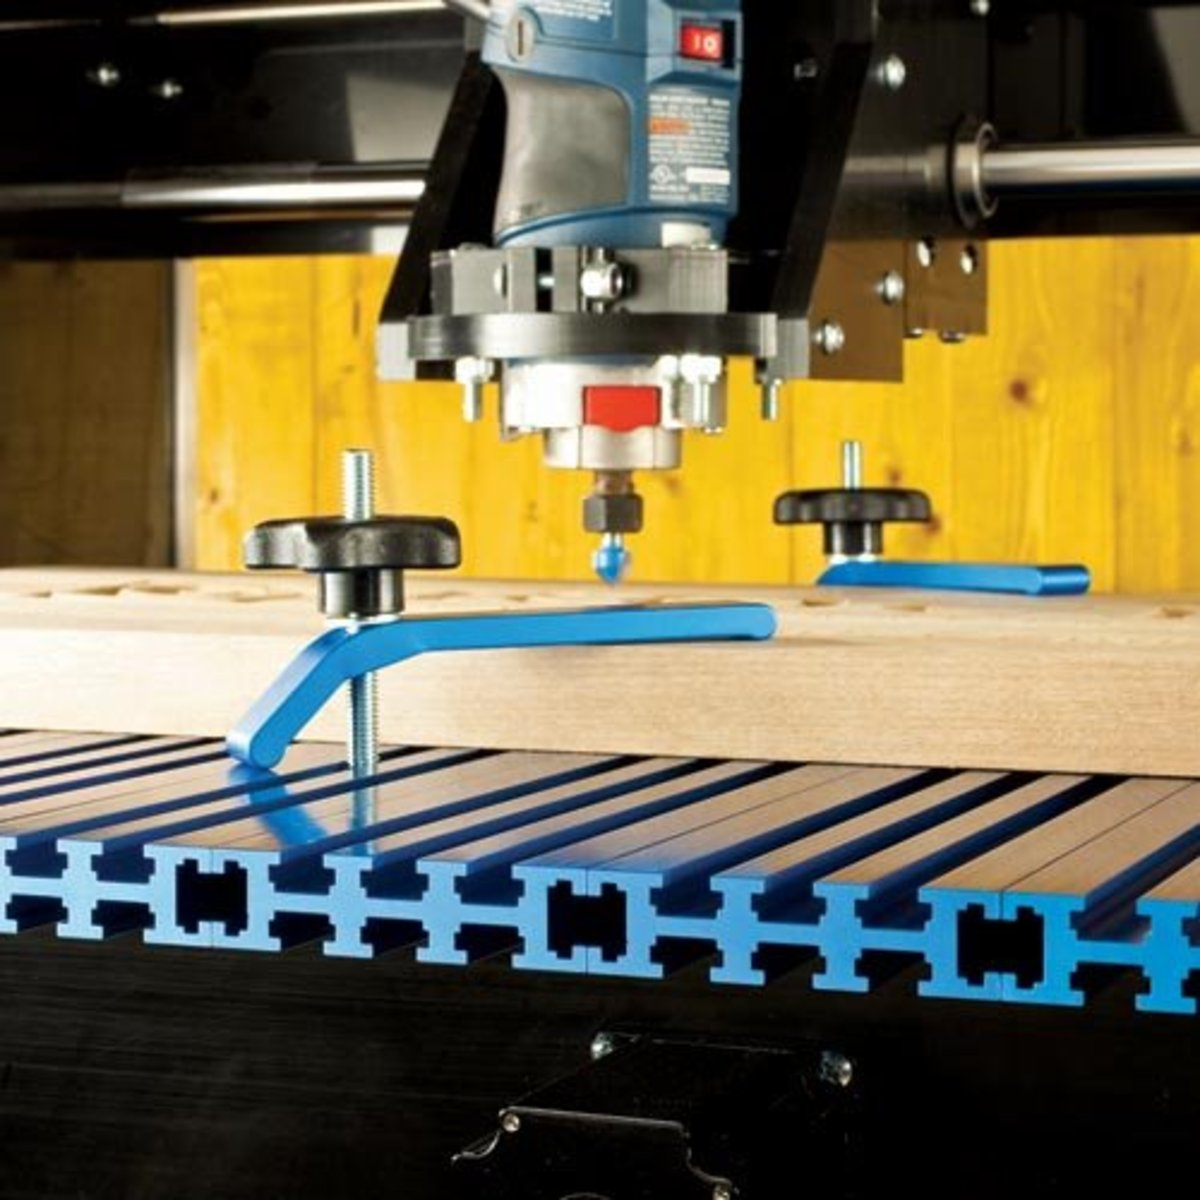 The Rockler CNC Shark Routing System adds another level to what your shop is capable of.